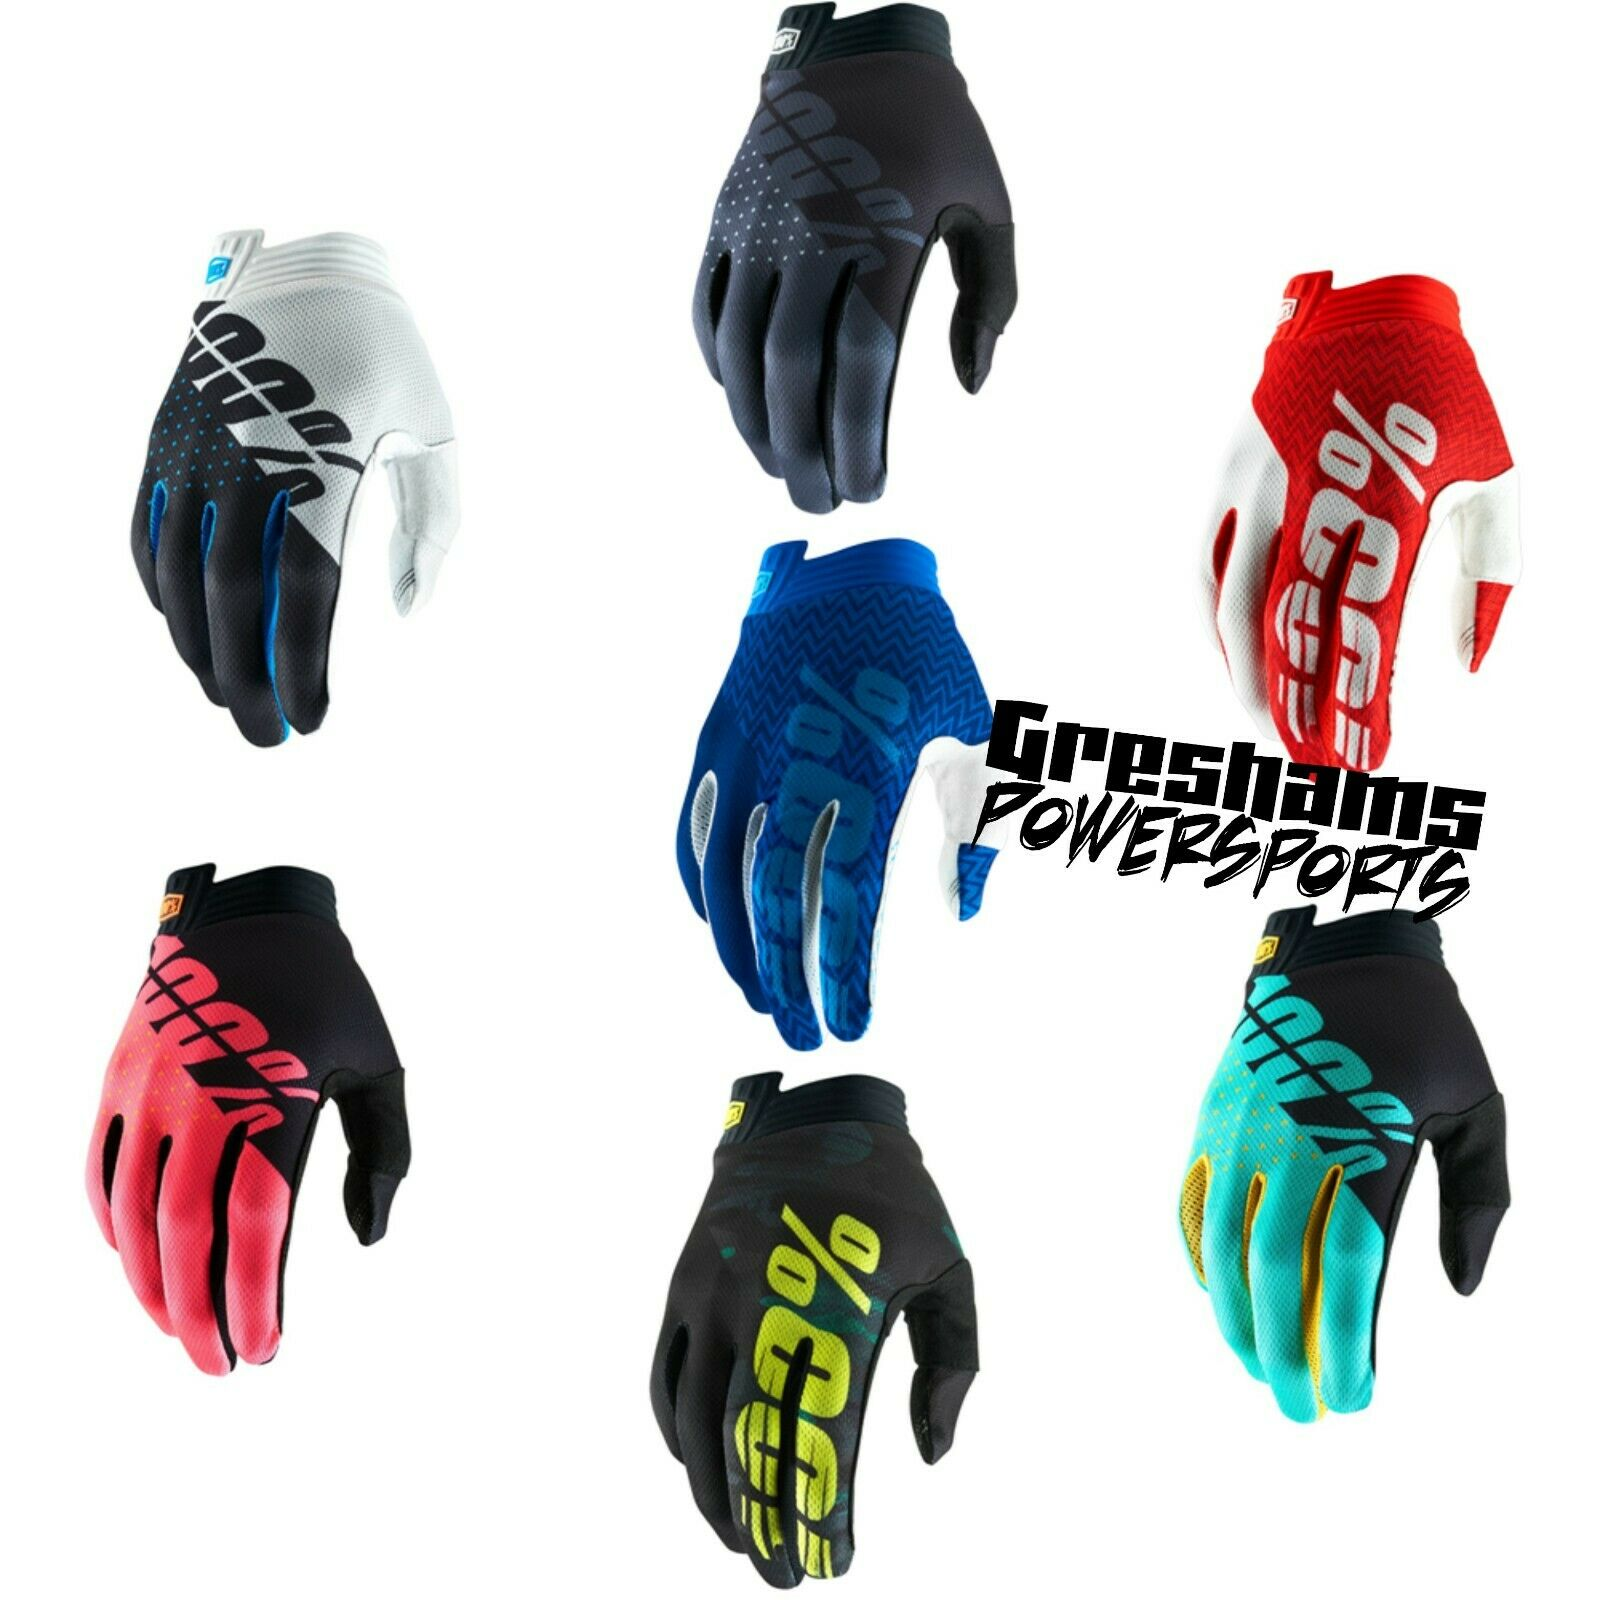 Black//Charcoal//Medium 100/% Airmatic Youth Boys Off-Road Motorcycle Gloves